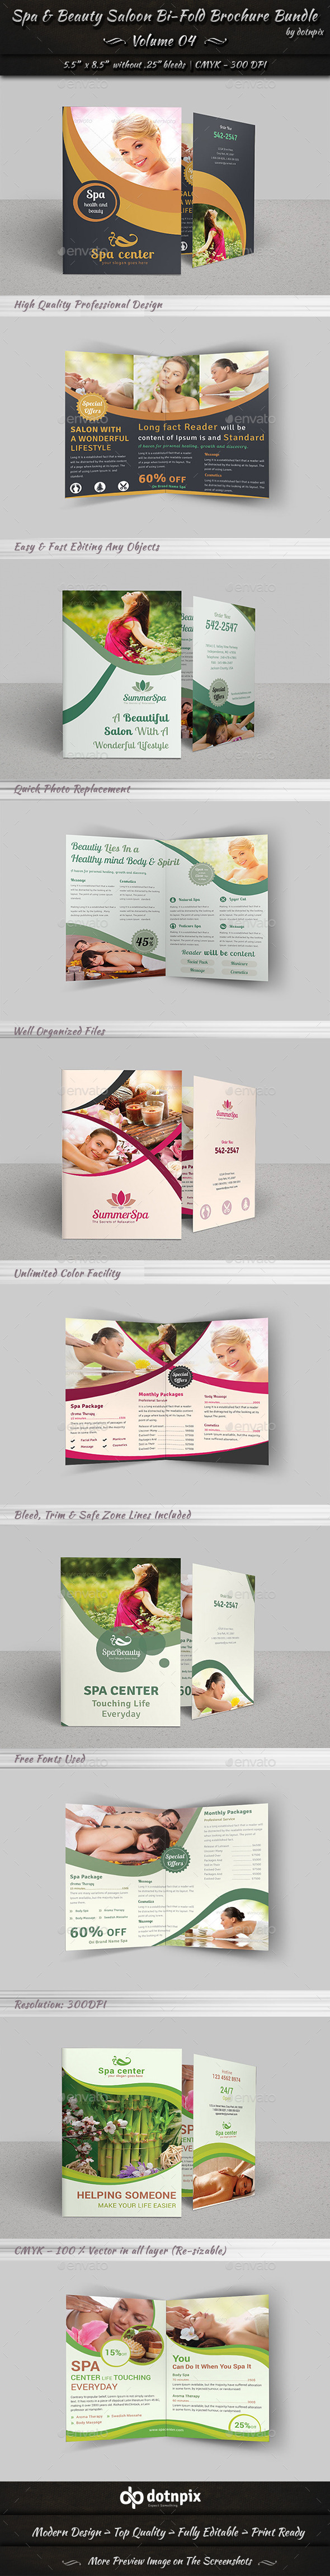 Spa & Beauty Saloon Bi-Fold Brochure Bundle | v4 - Corporate Brochures